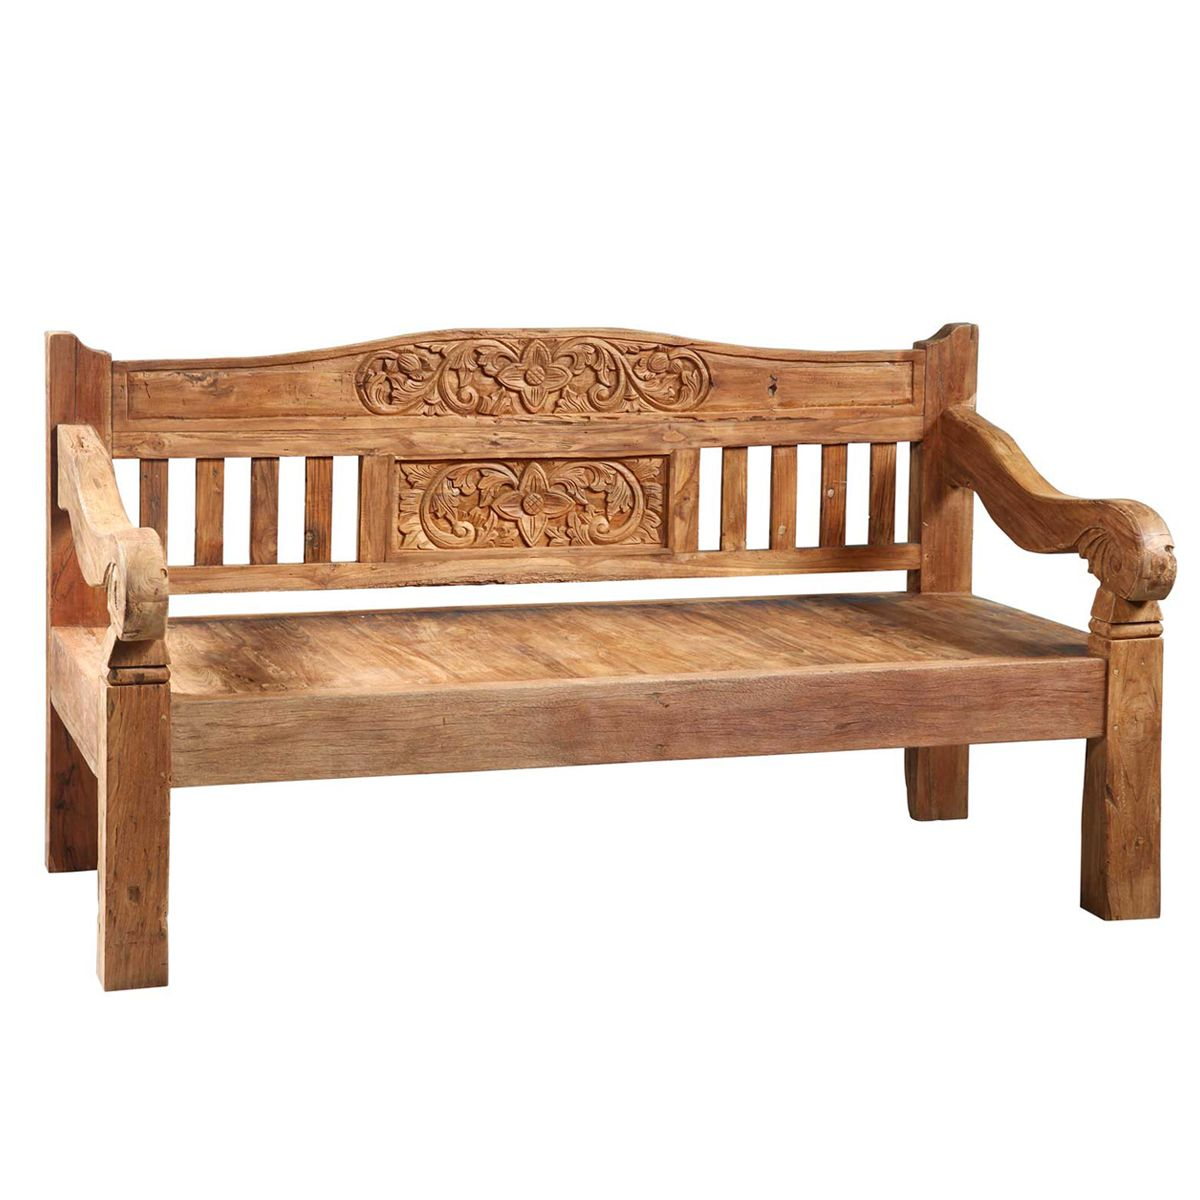 Balinese teak carved daybed bench floral